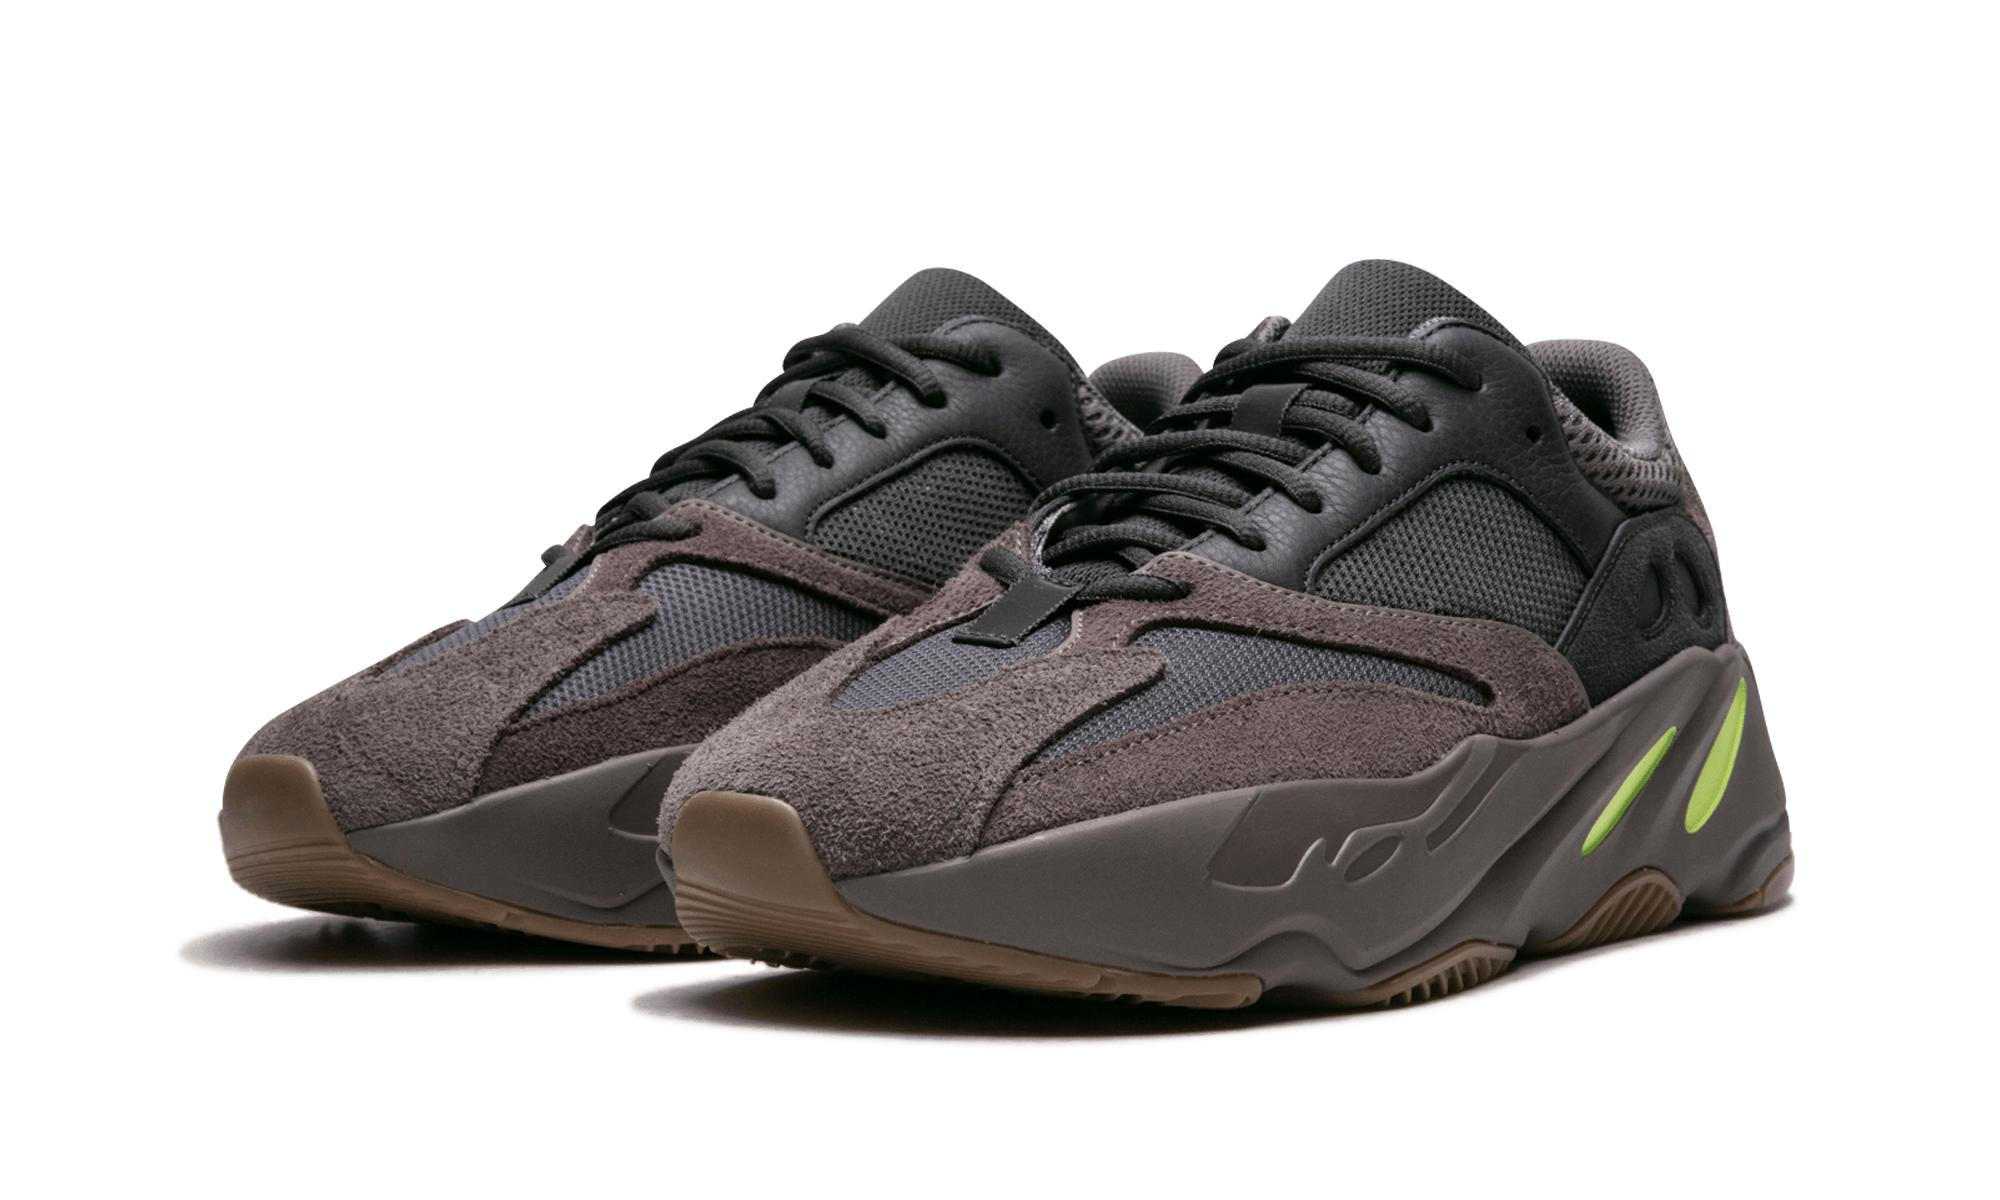 14c80fe2cd254 Adidas Yeezy Boost 700 in Purple for Men - Lyst